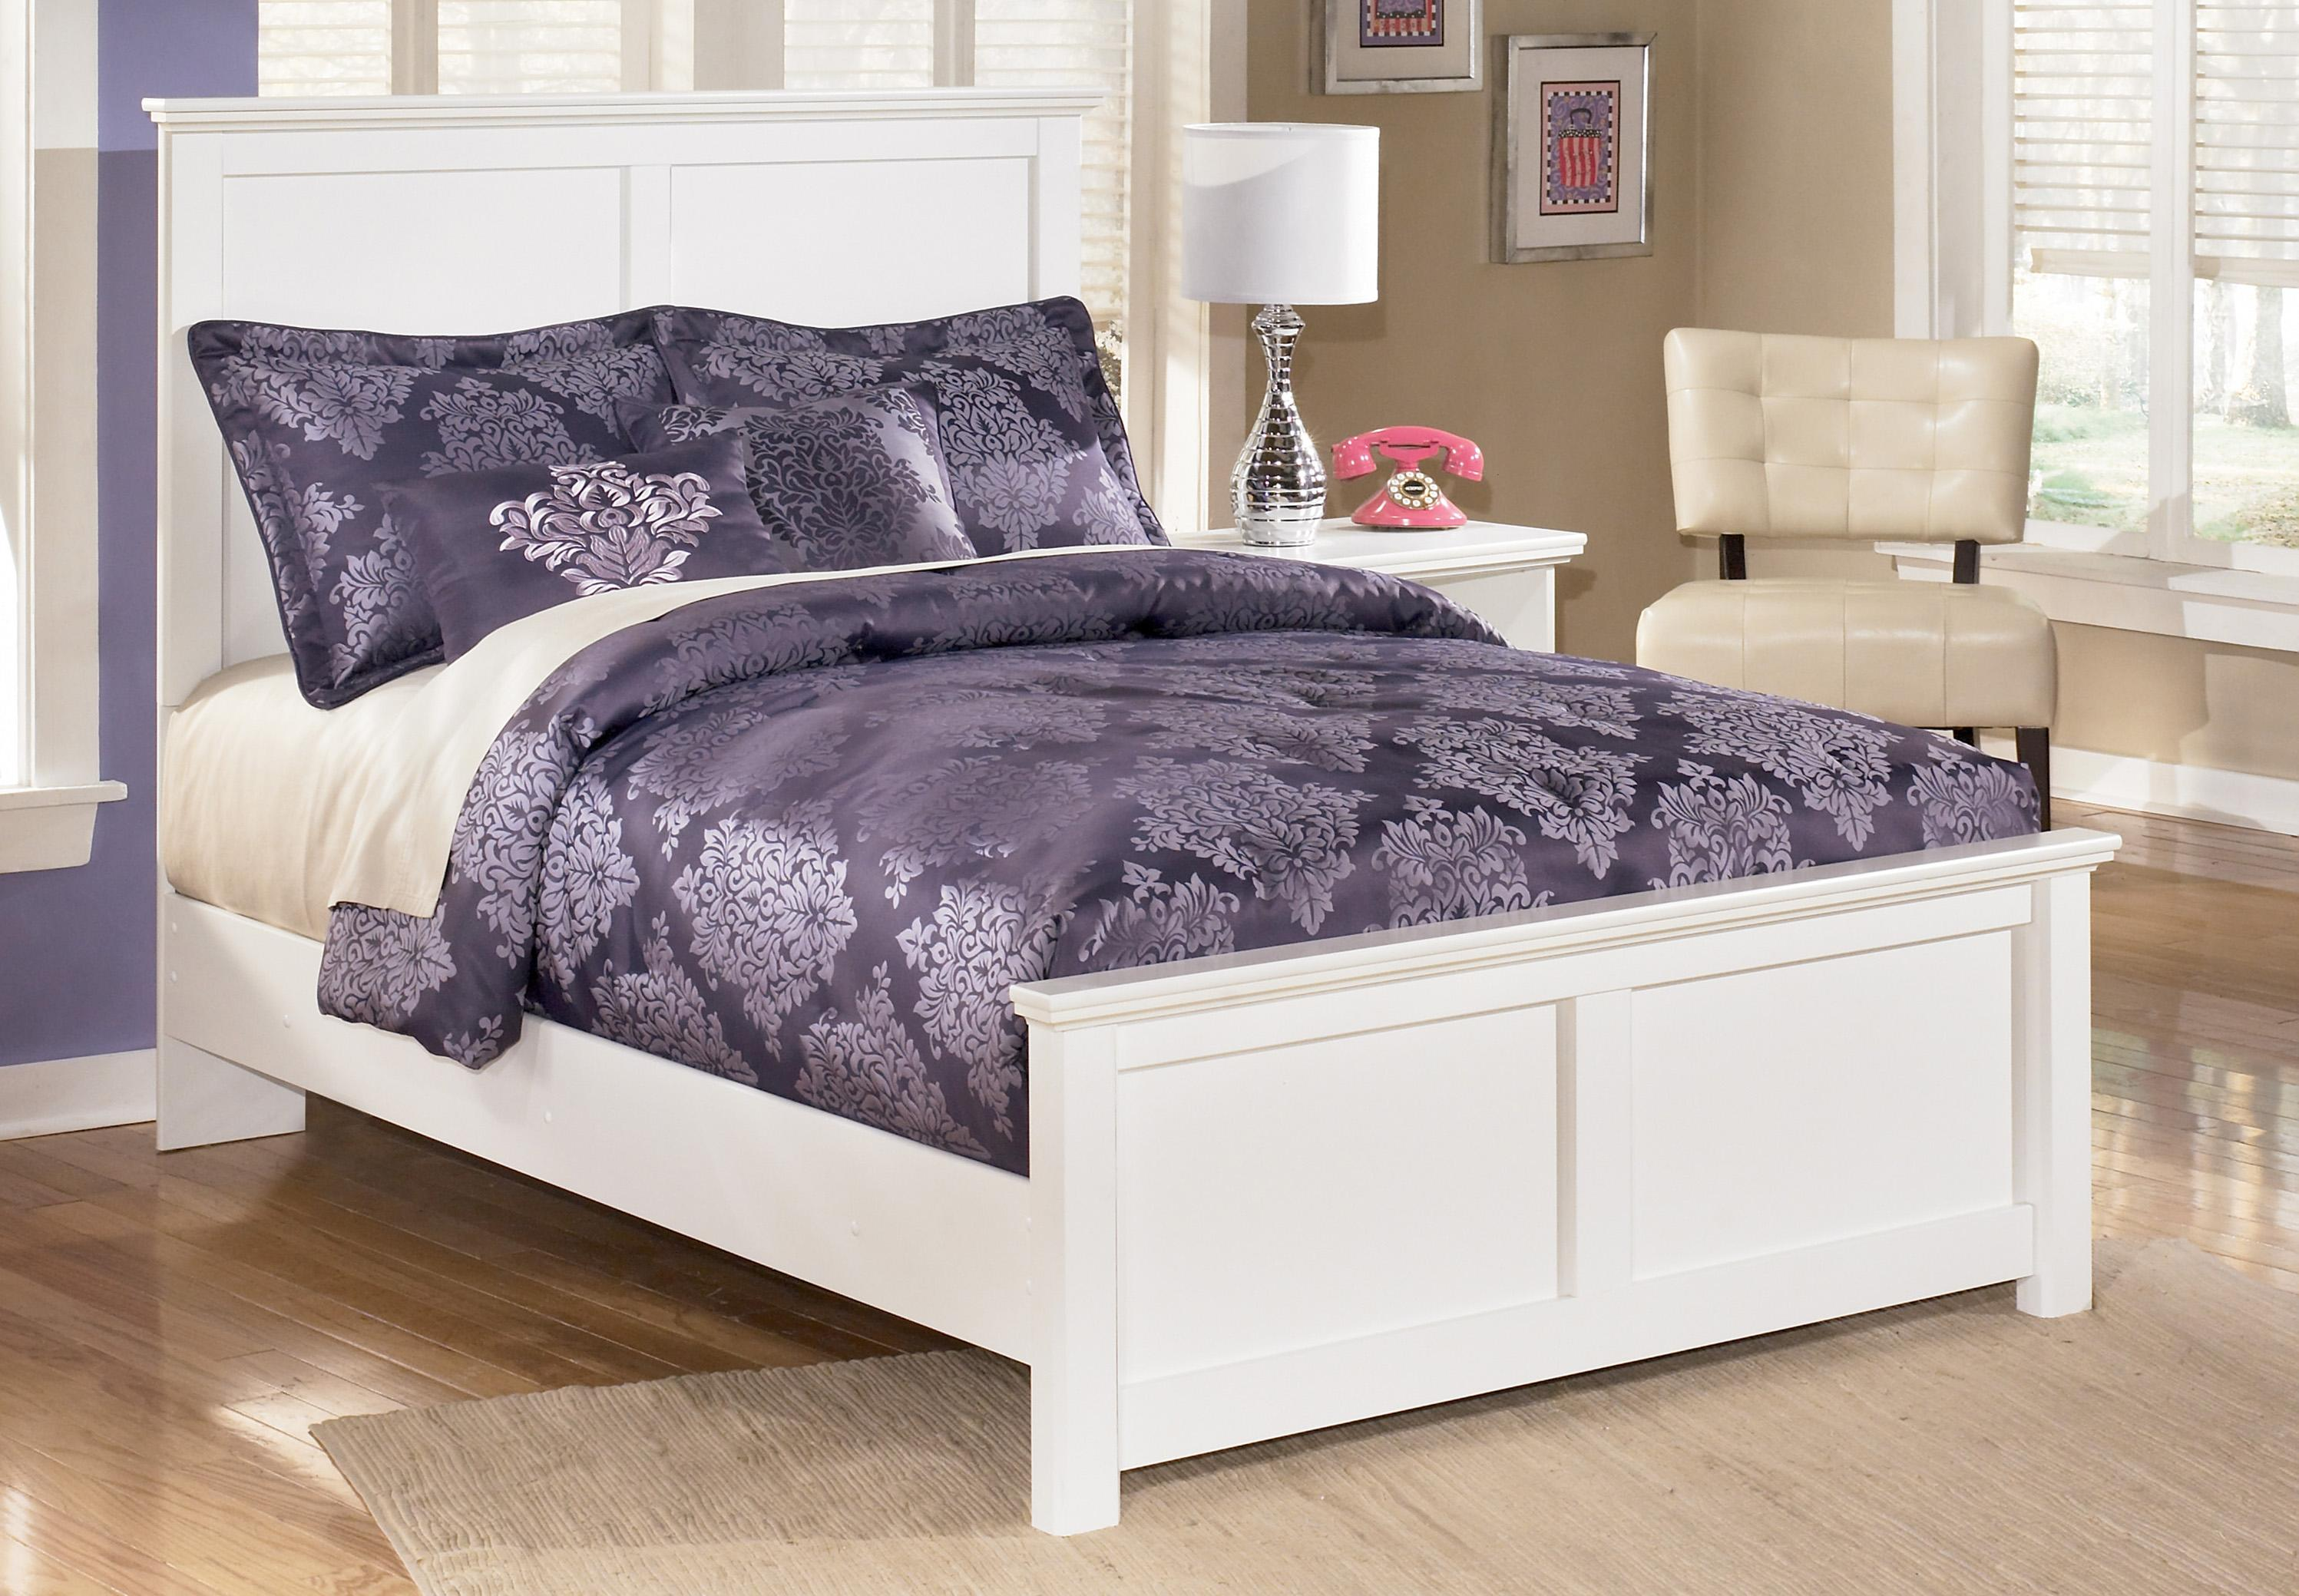 Queen Panel Bed With Simple Moulding By Signature Design